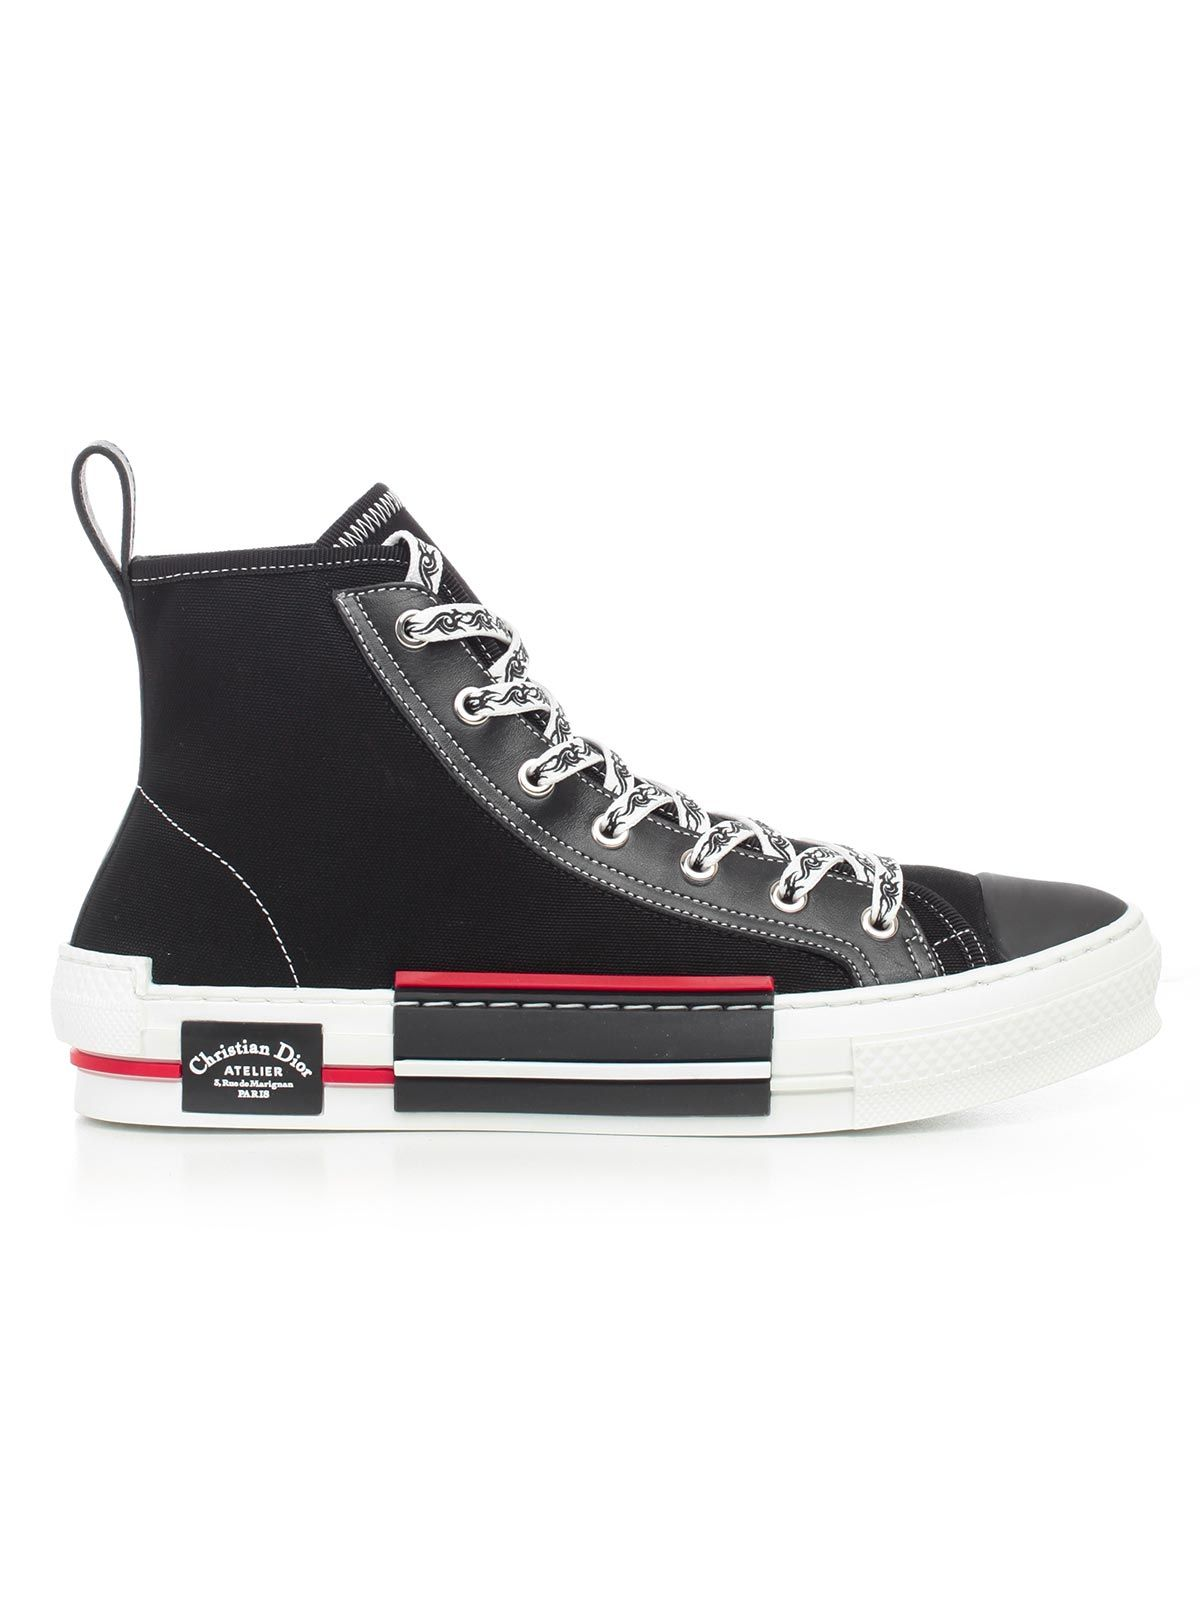 dior homme converse sneakers